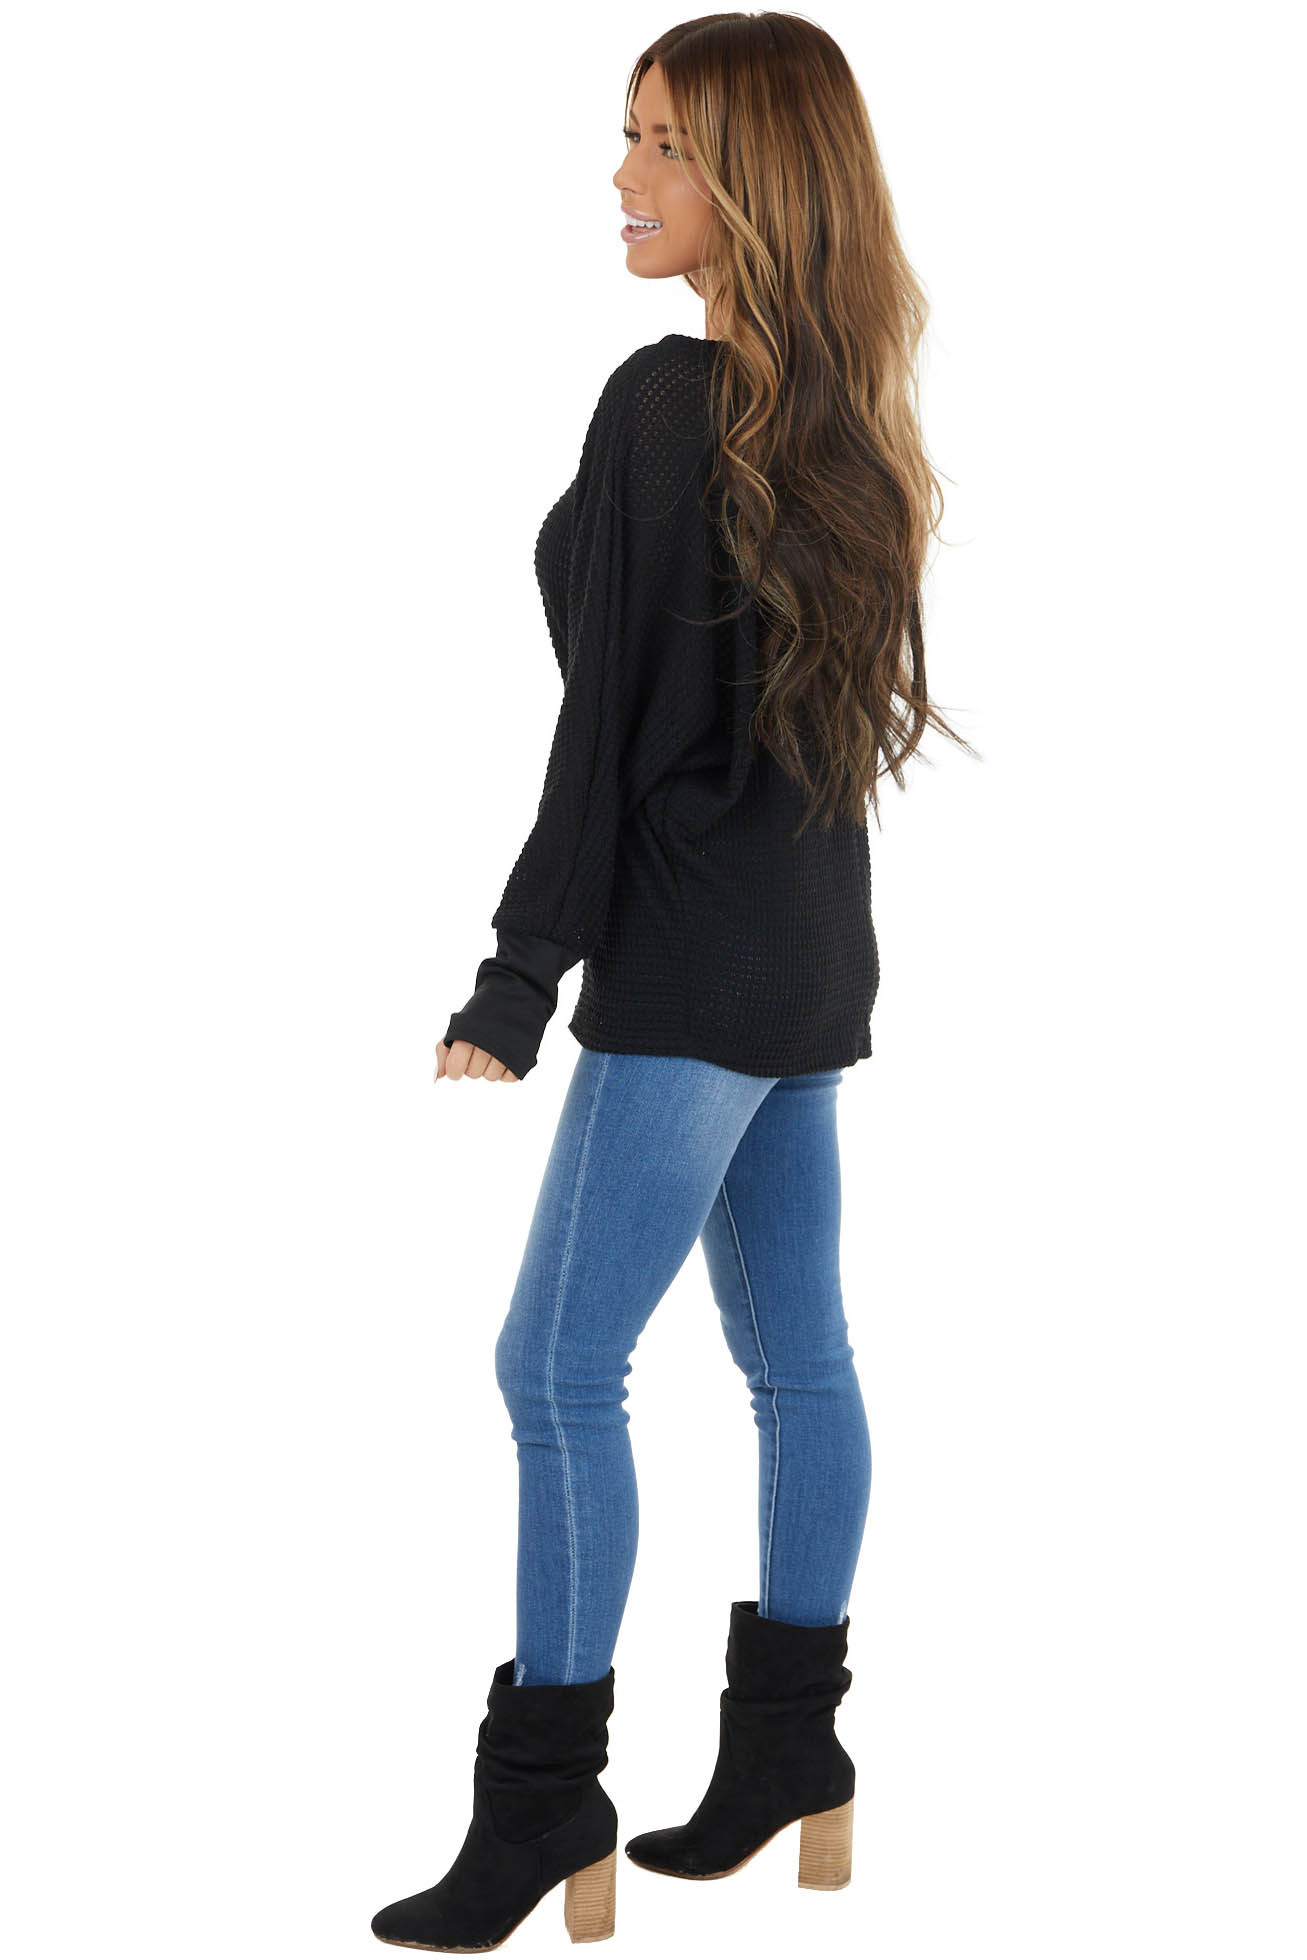 Black Waffle Knit Dolman Sleeve Top with Long Banded Cuffs